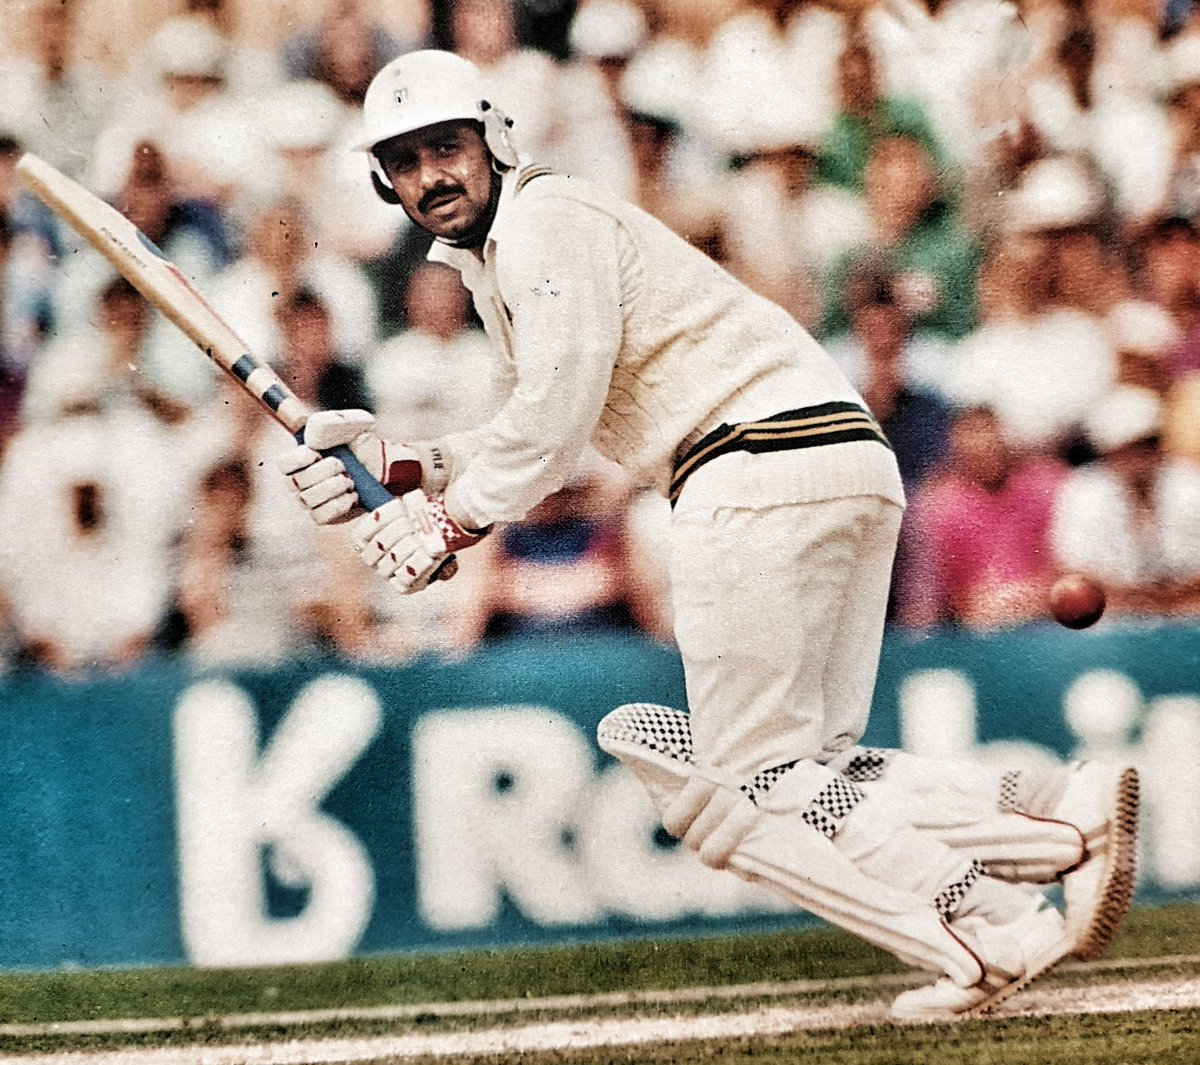 Happy Birthday to one of the legends of the game @ItsJavedMiandad . One of the smartest brains in cricket and an amazing fighter on the cricket field. #HappyBirthday #JavedMiandad #Pakistan